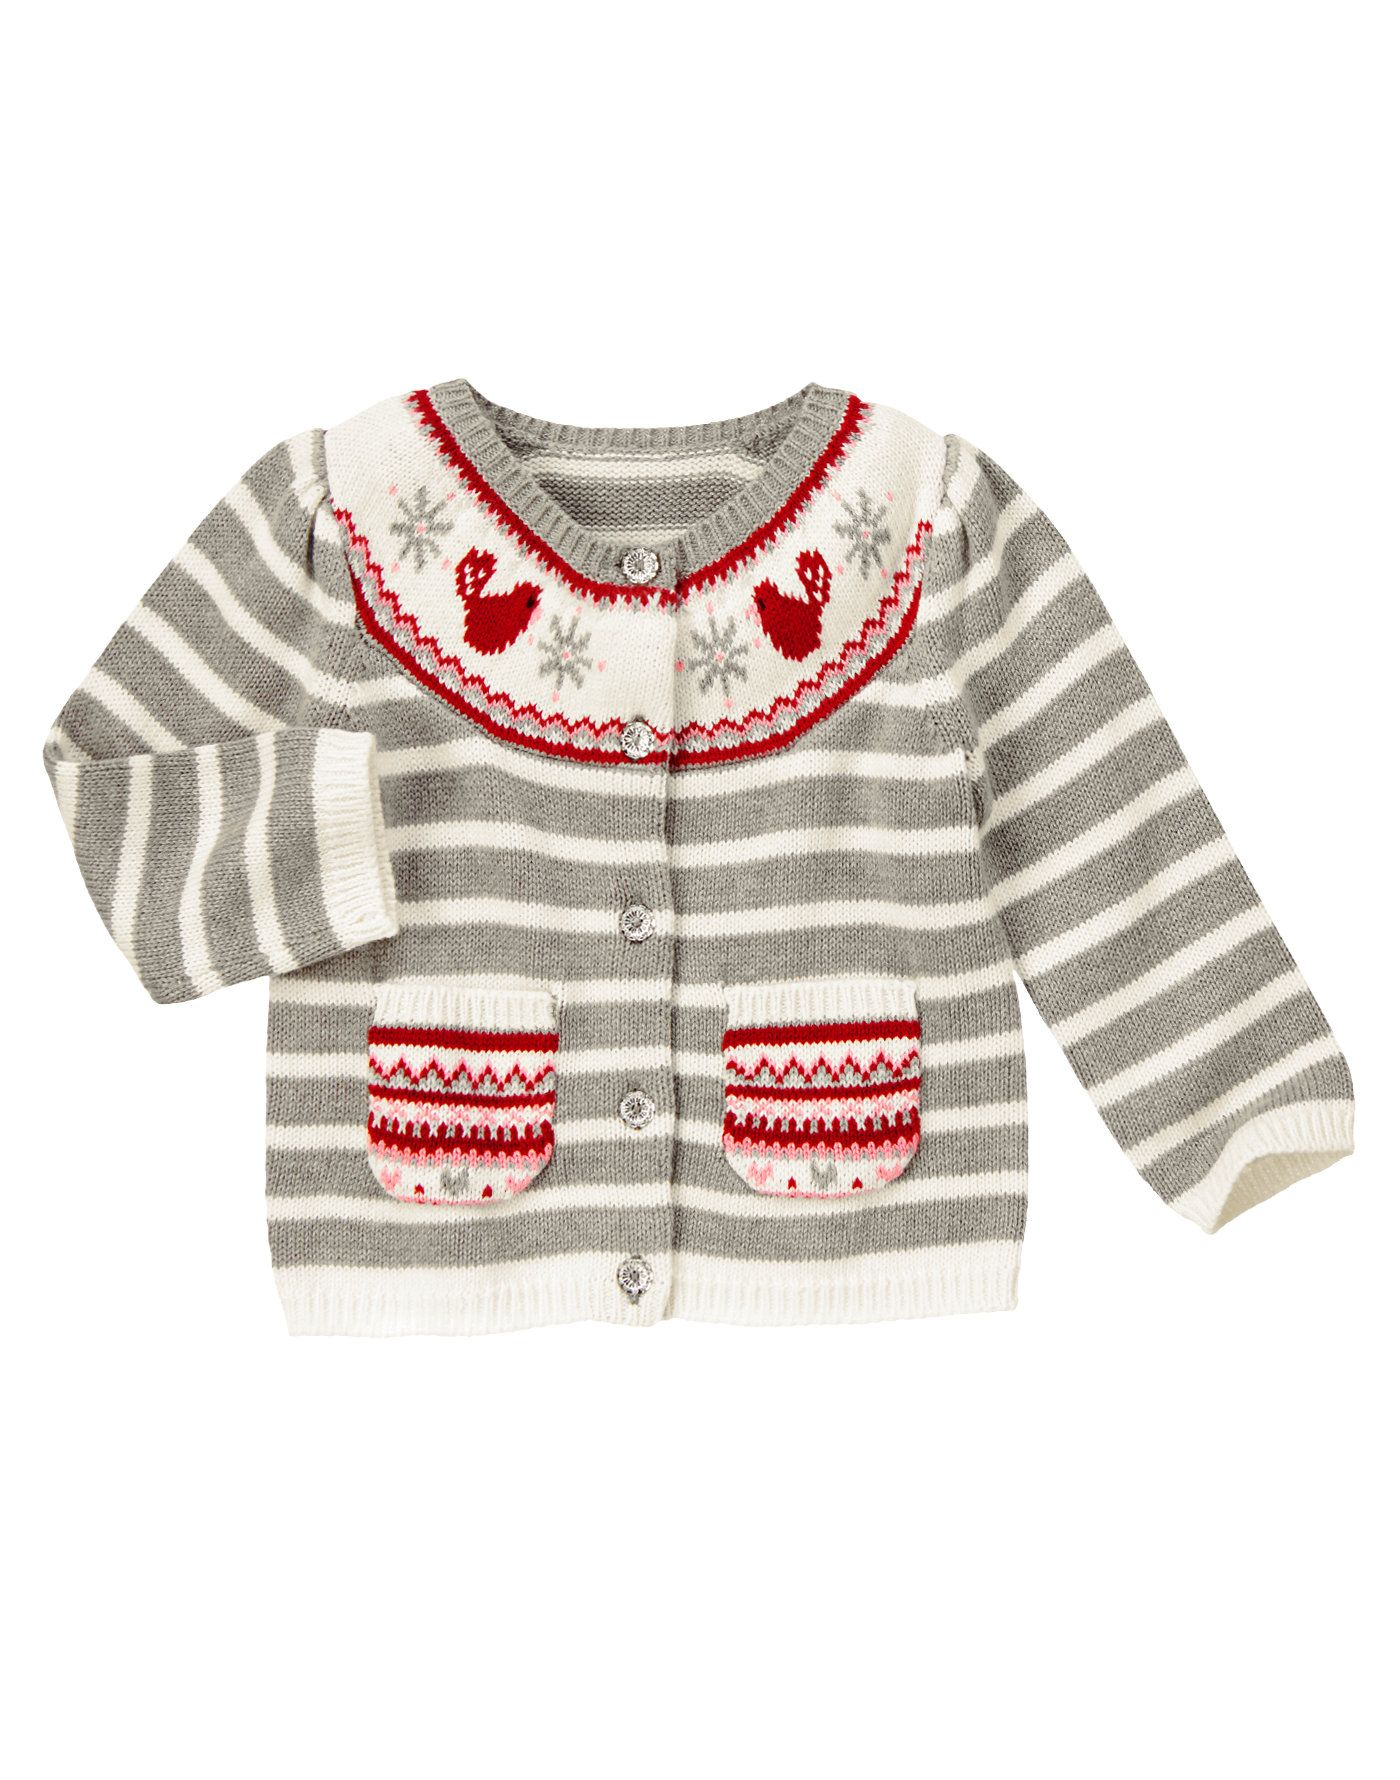 1d39e7118 Cozy cutie. Sweet cardigan is brightened up with birdie and ...